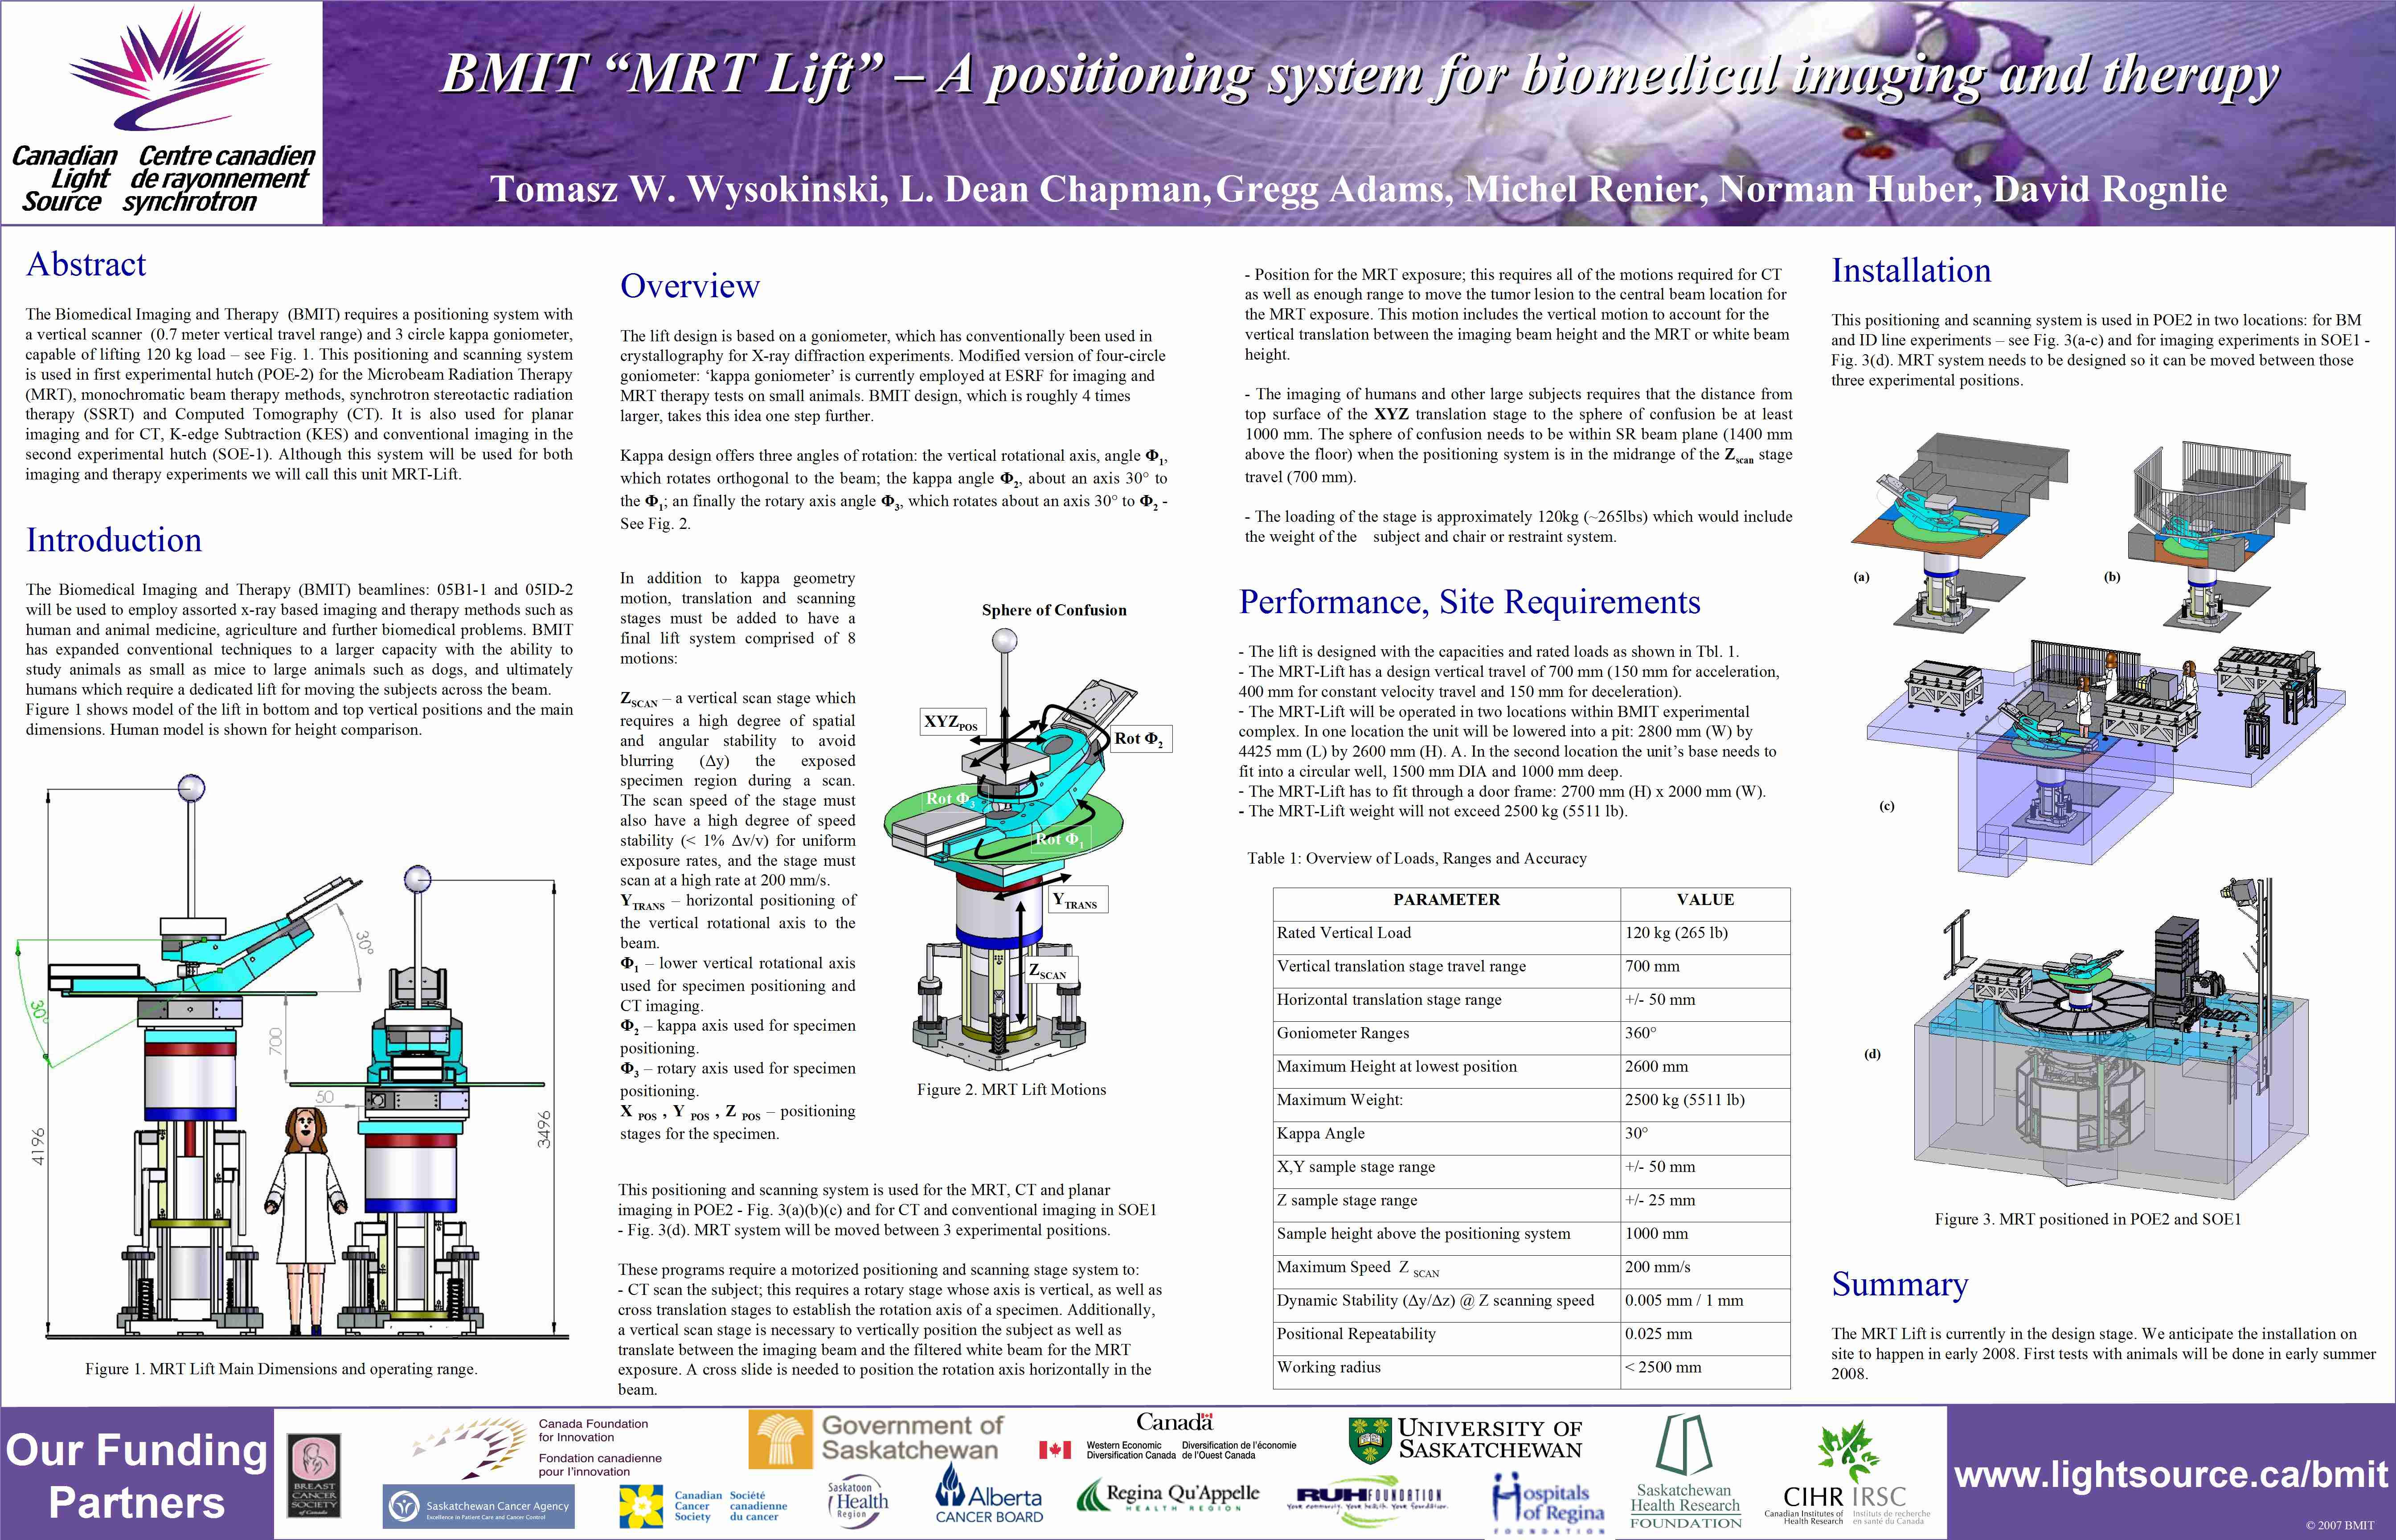 "BMIT ""MRT Lift"" - A positioning system for biomedical imaging and therapy Image"